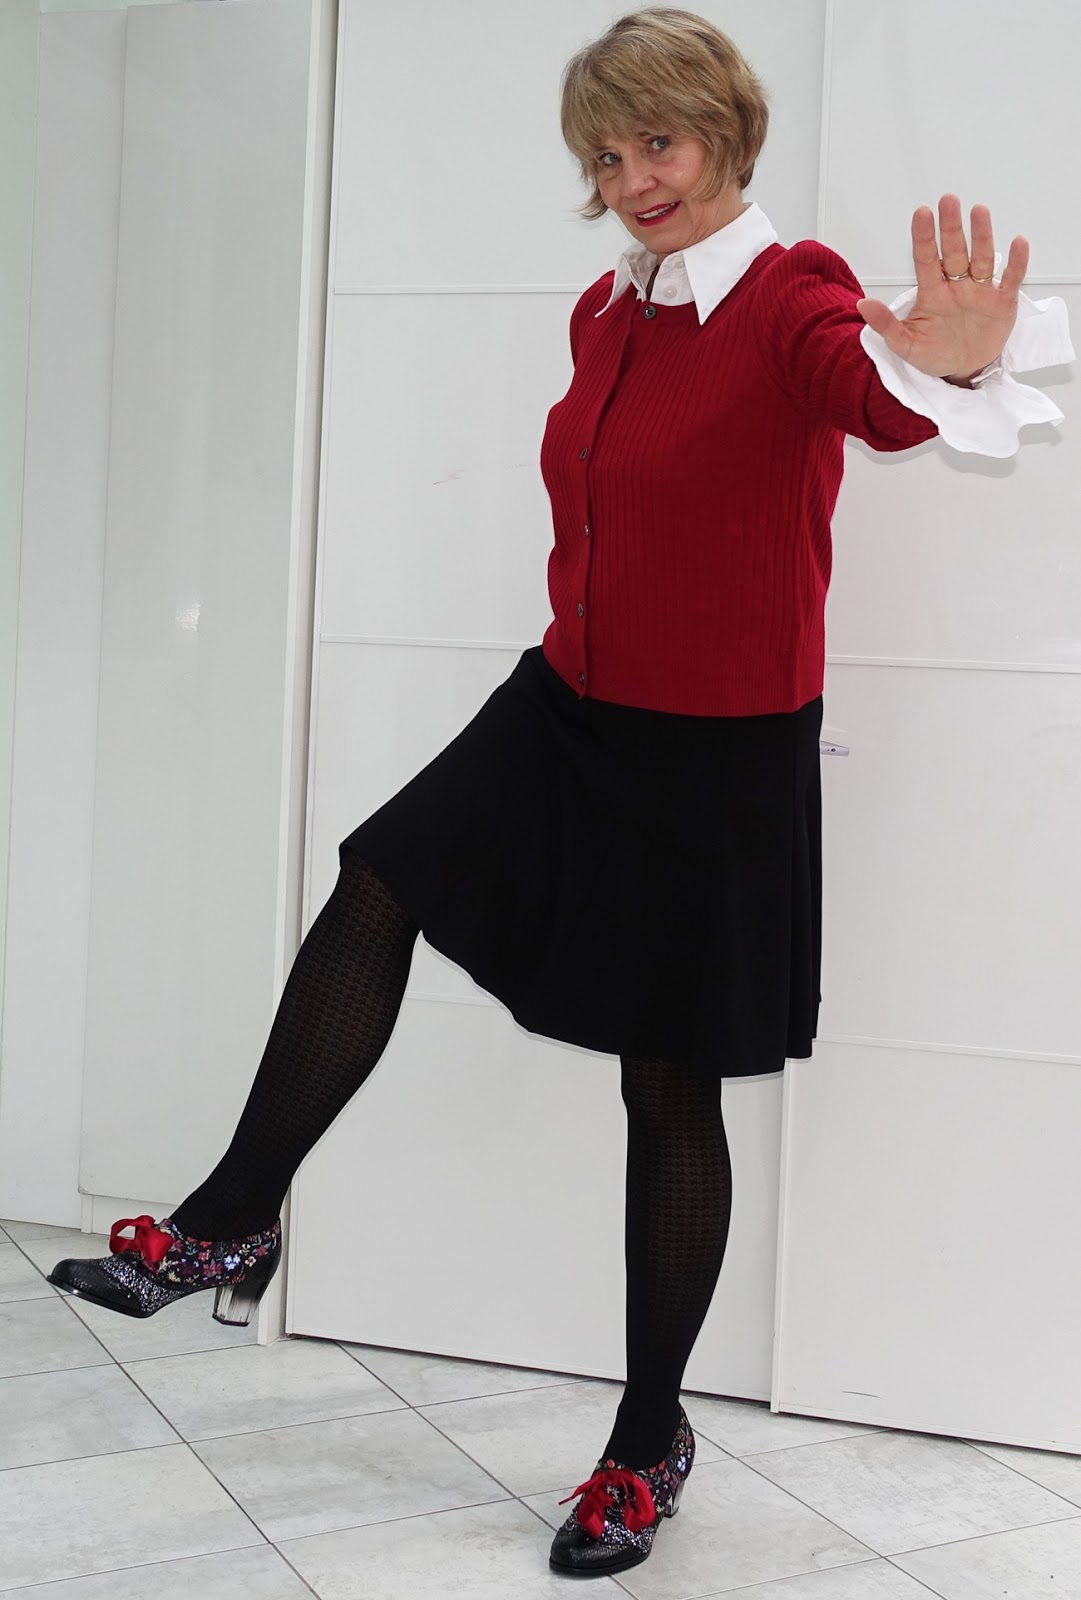 Image shwing a woman wearing a red cardigan with black and an attention grabbing pair of shoes with red ribbons and perspex heels